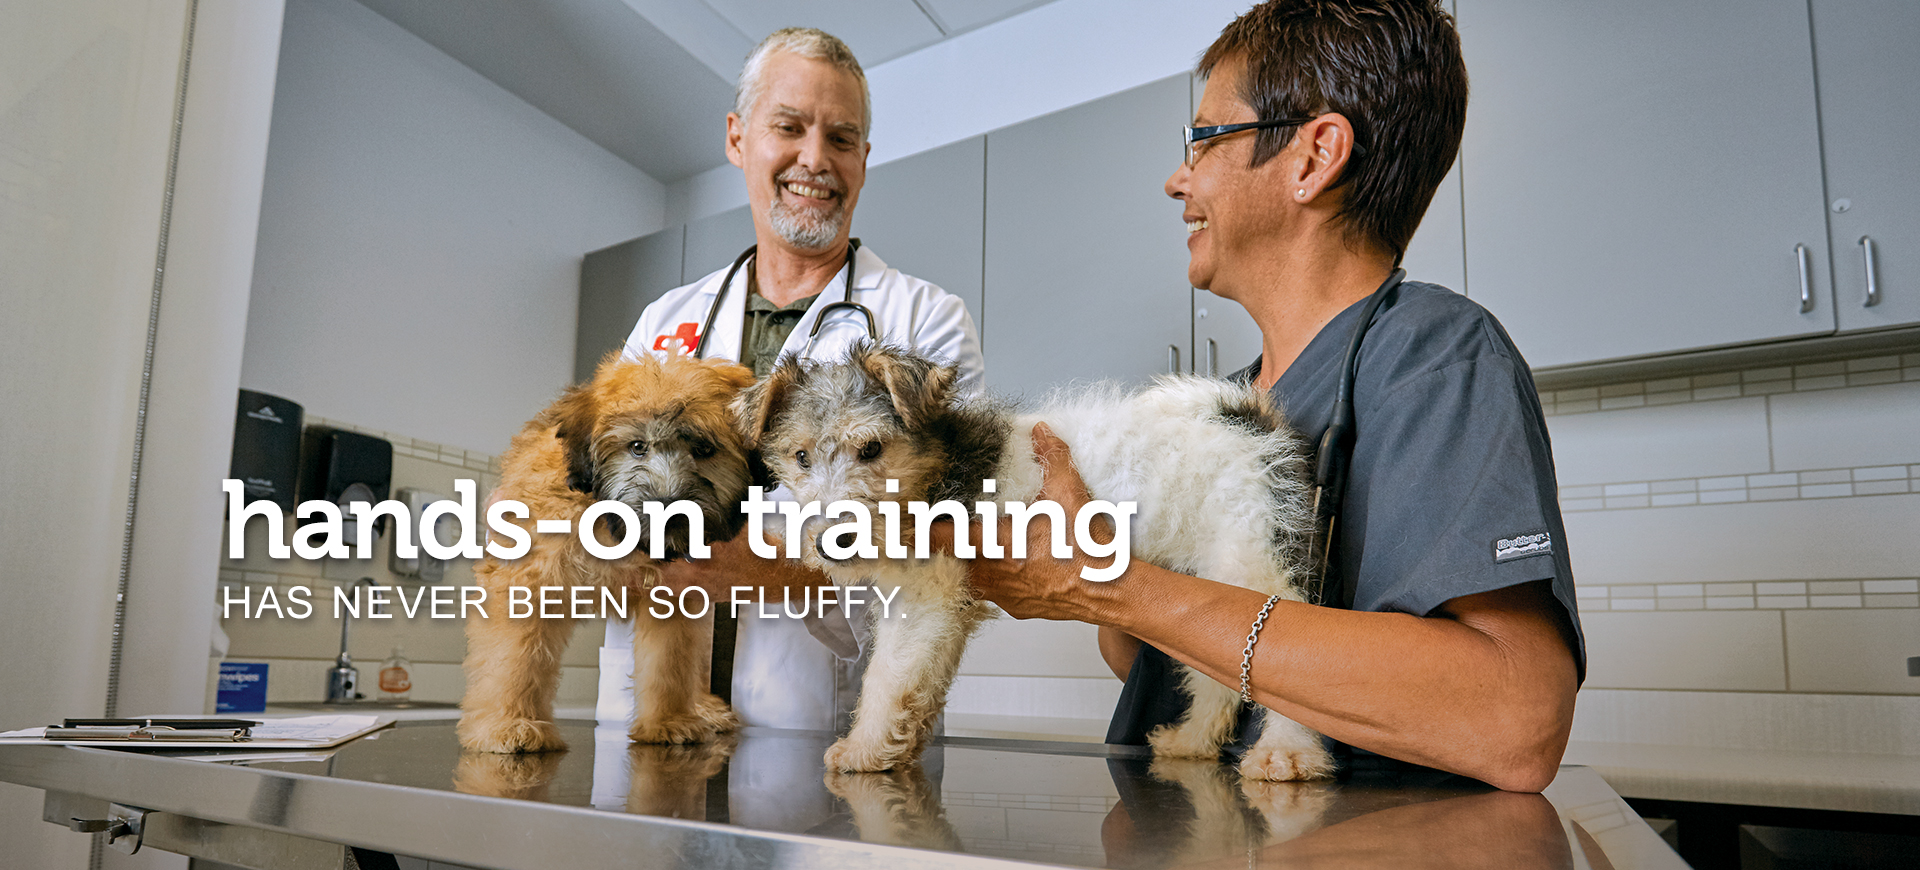 A male veterinarian and a female veterinary assistant talking while working with two fluffy puppies on an exam table. Text across the image reads 'hands-on training has never been so fluffy.'